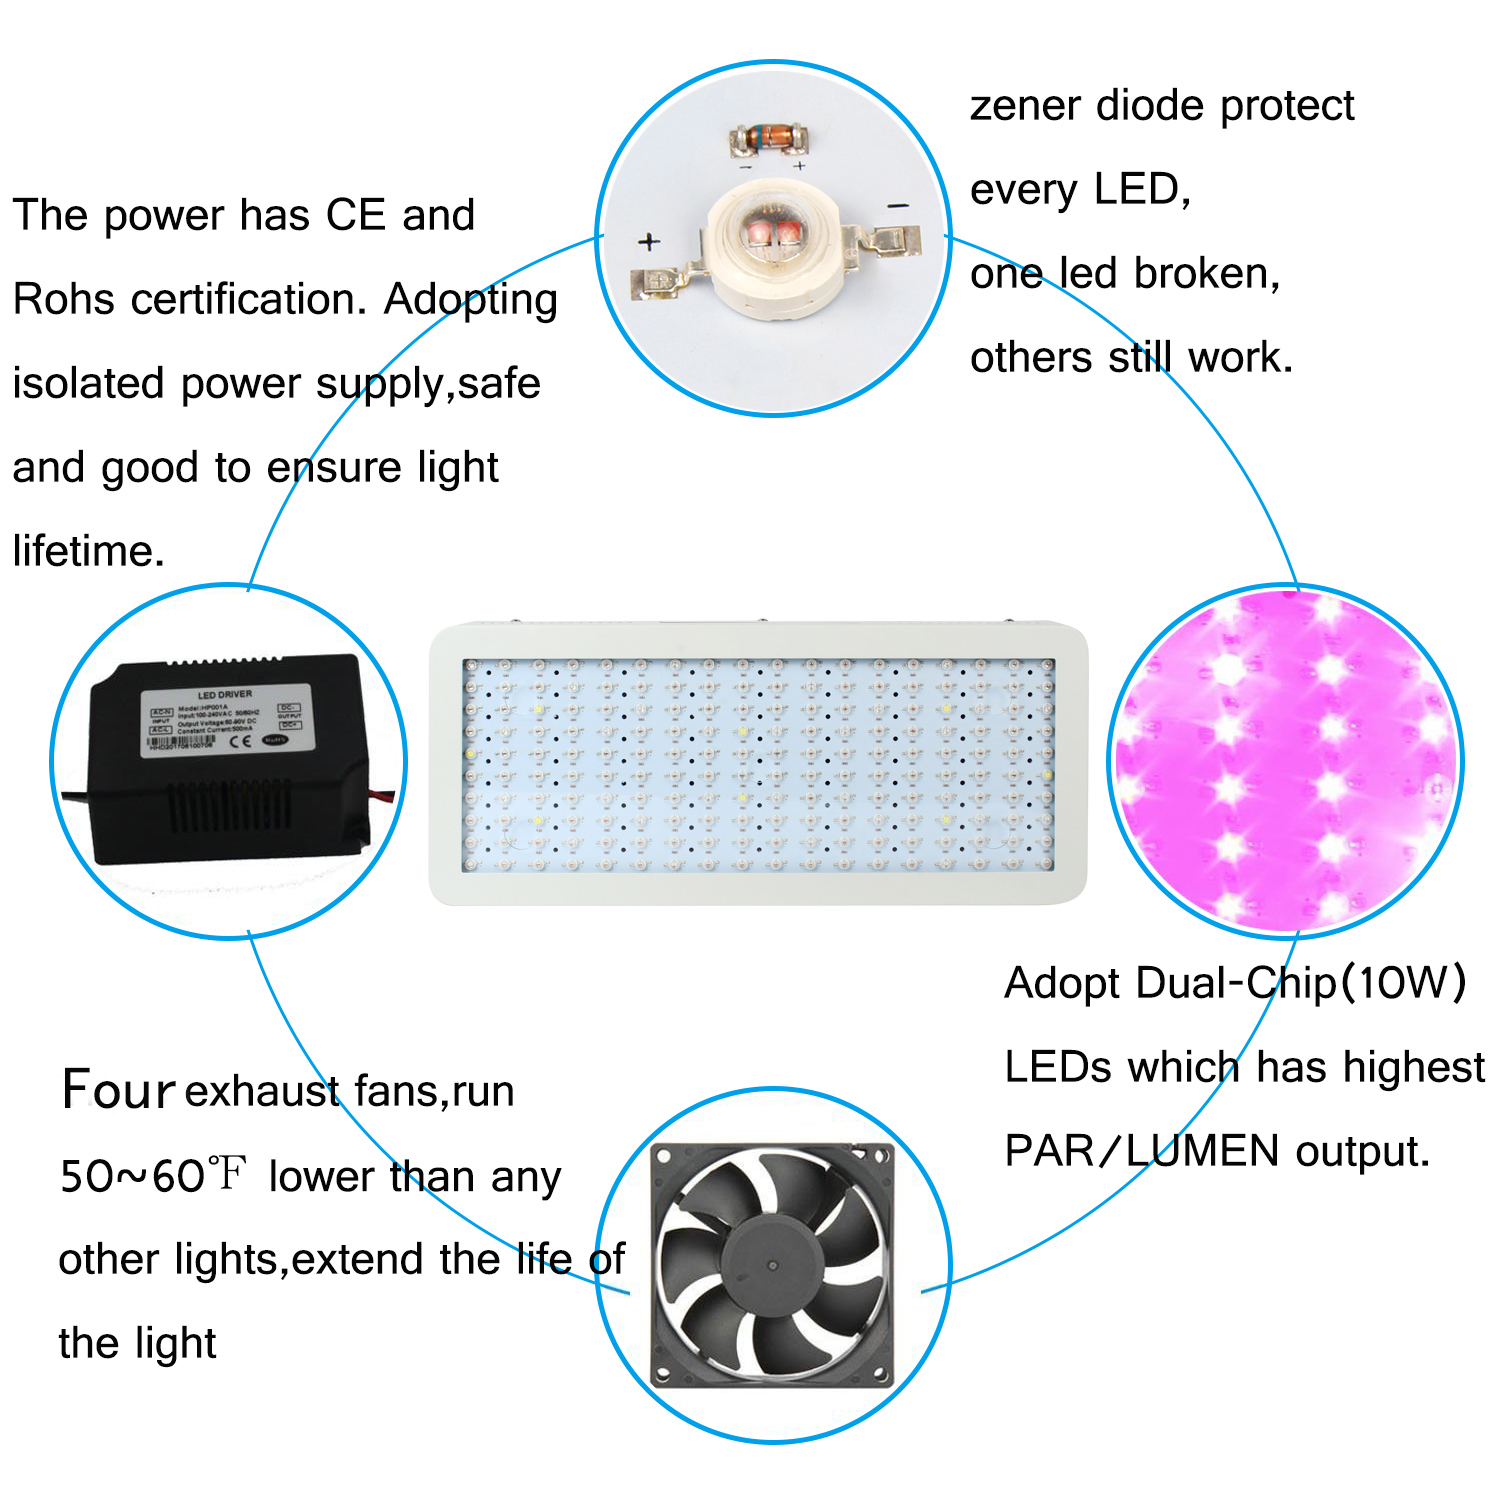 High PAR Output LED Grow Light